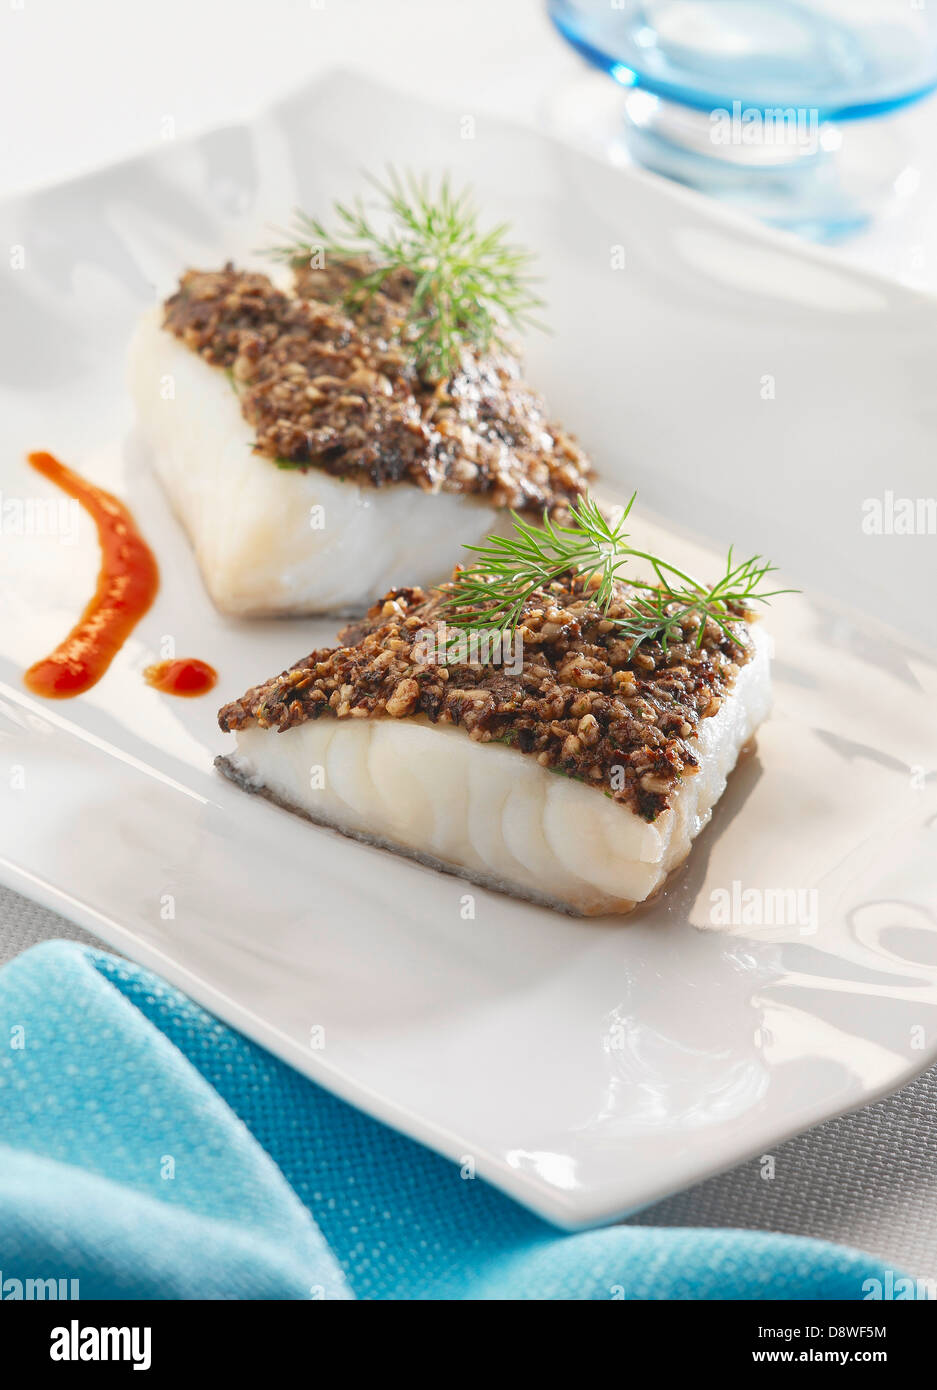 Thick pieces of cod with black olive and pine nut crust - Stock Image